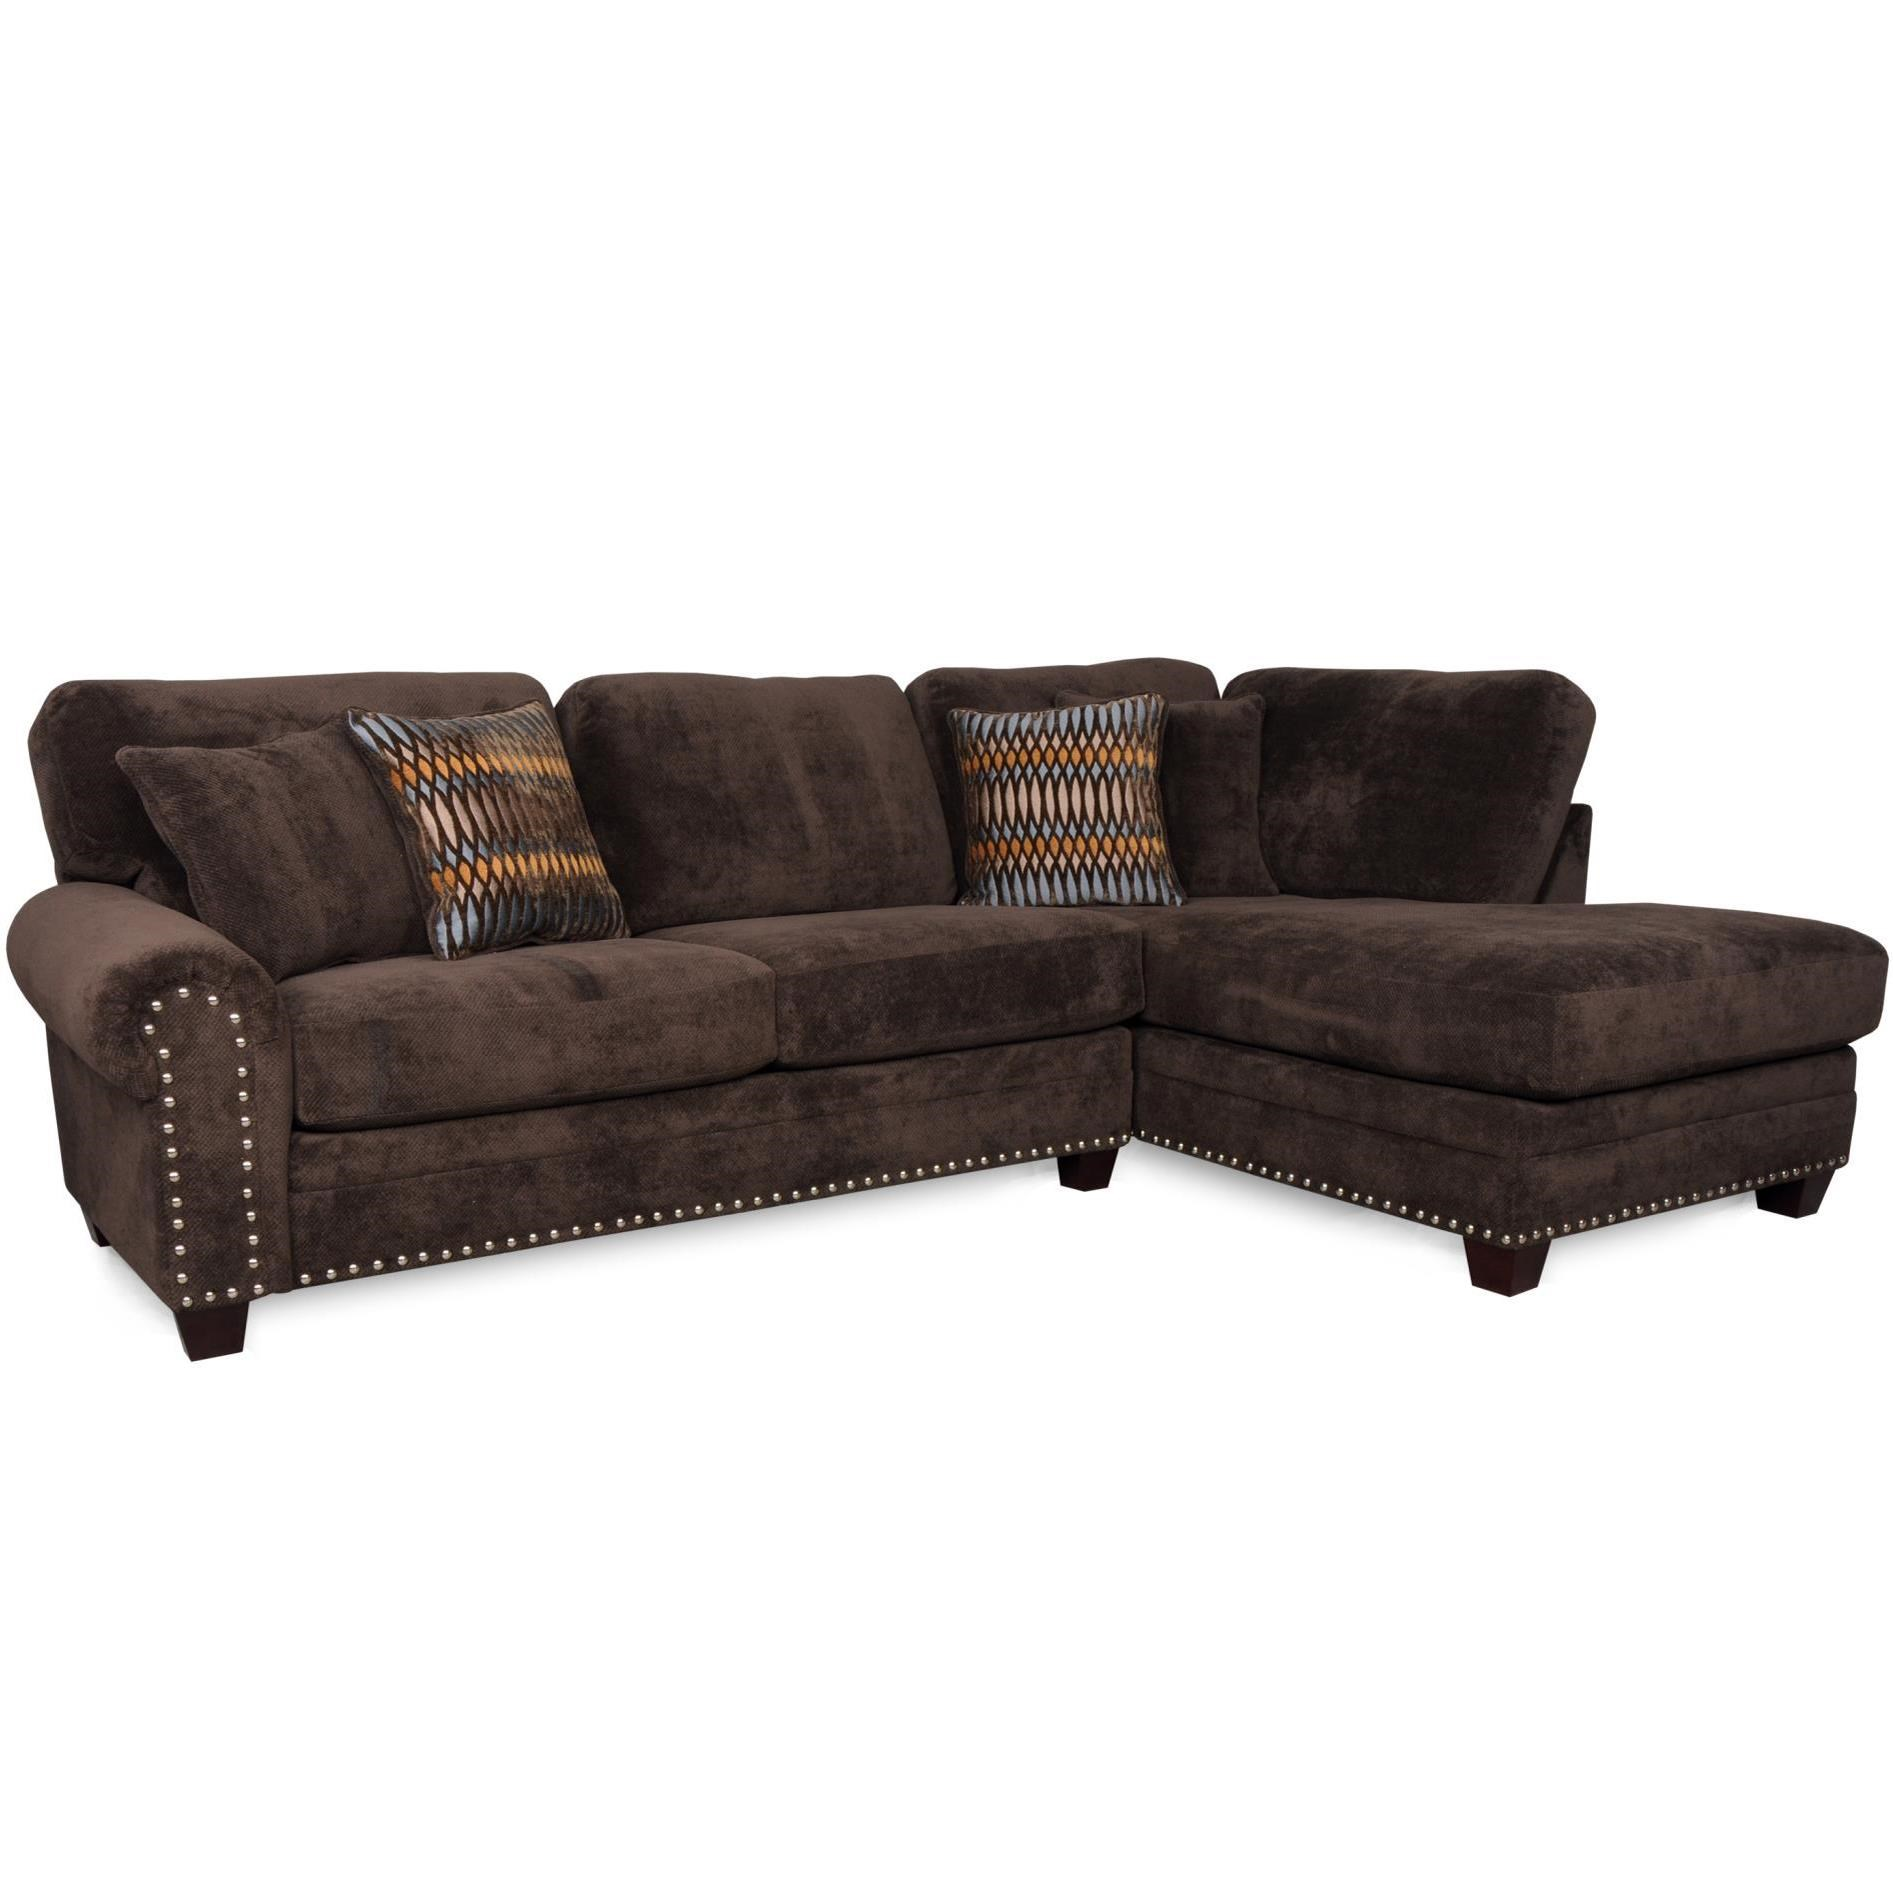 Albany 8648 Collection Casual Sectional with Tapered Block